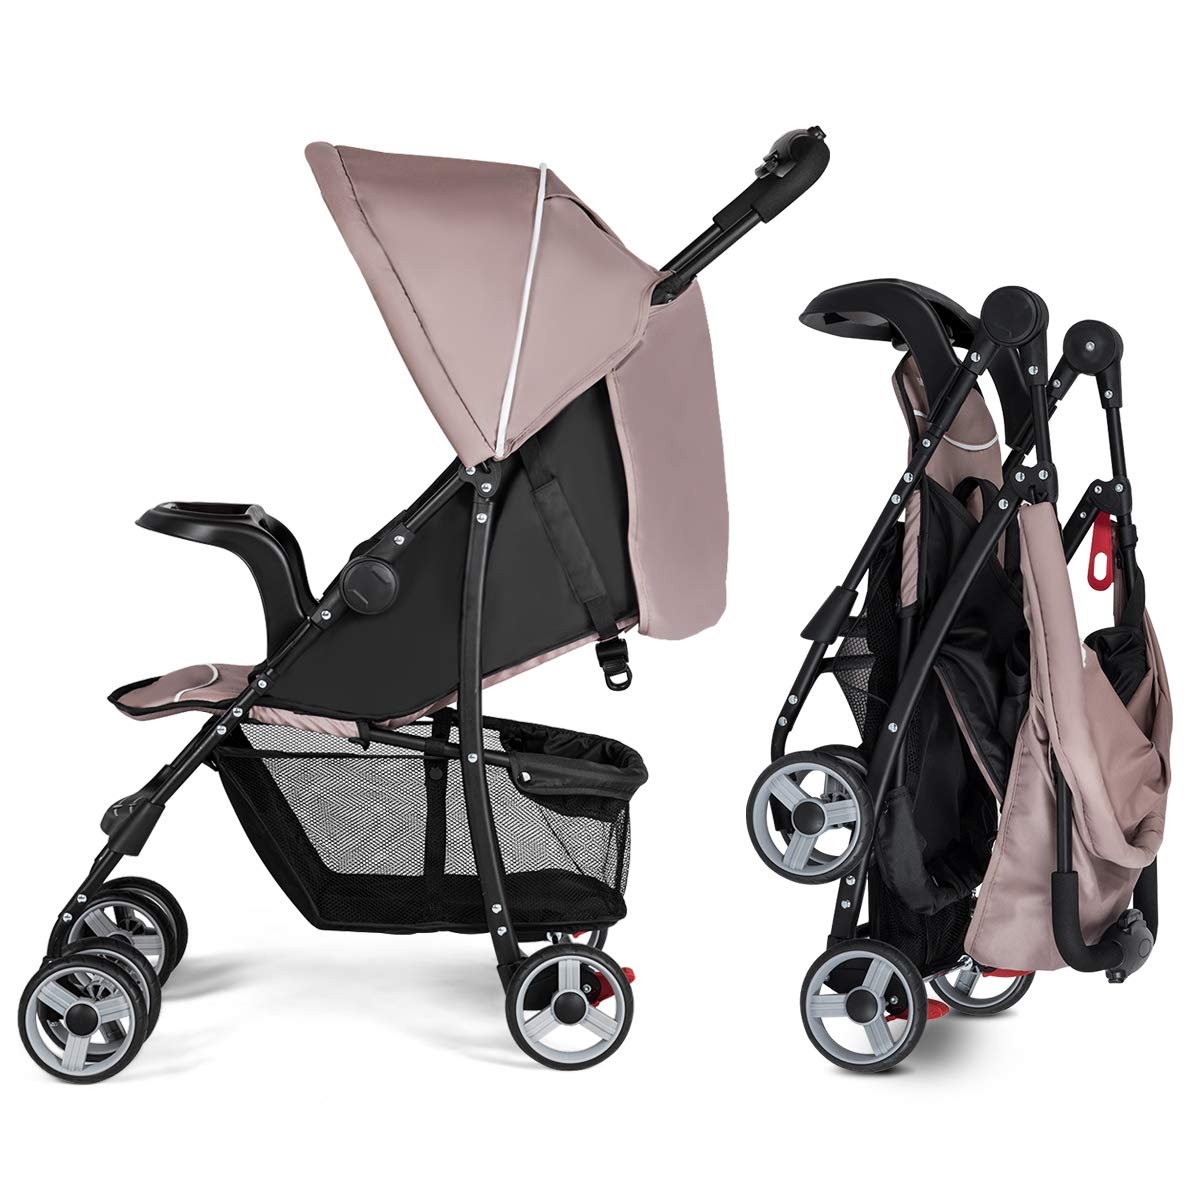 Costzon Lightweight Baby Stroller, Foldable Stroller with 5-Point Safety System and Multi Position Reclining Seat Coffee